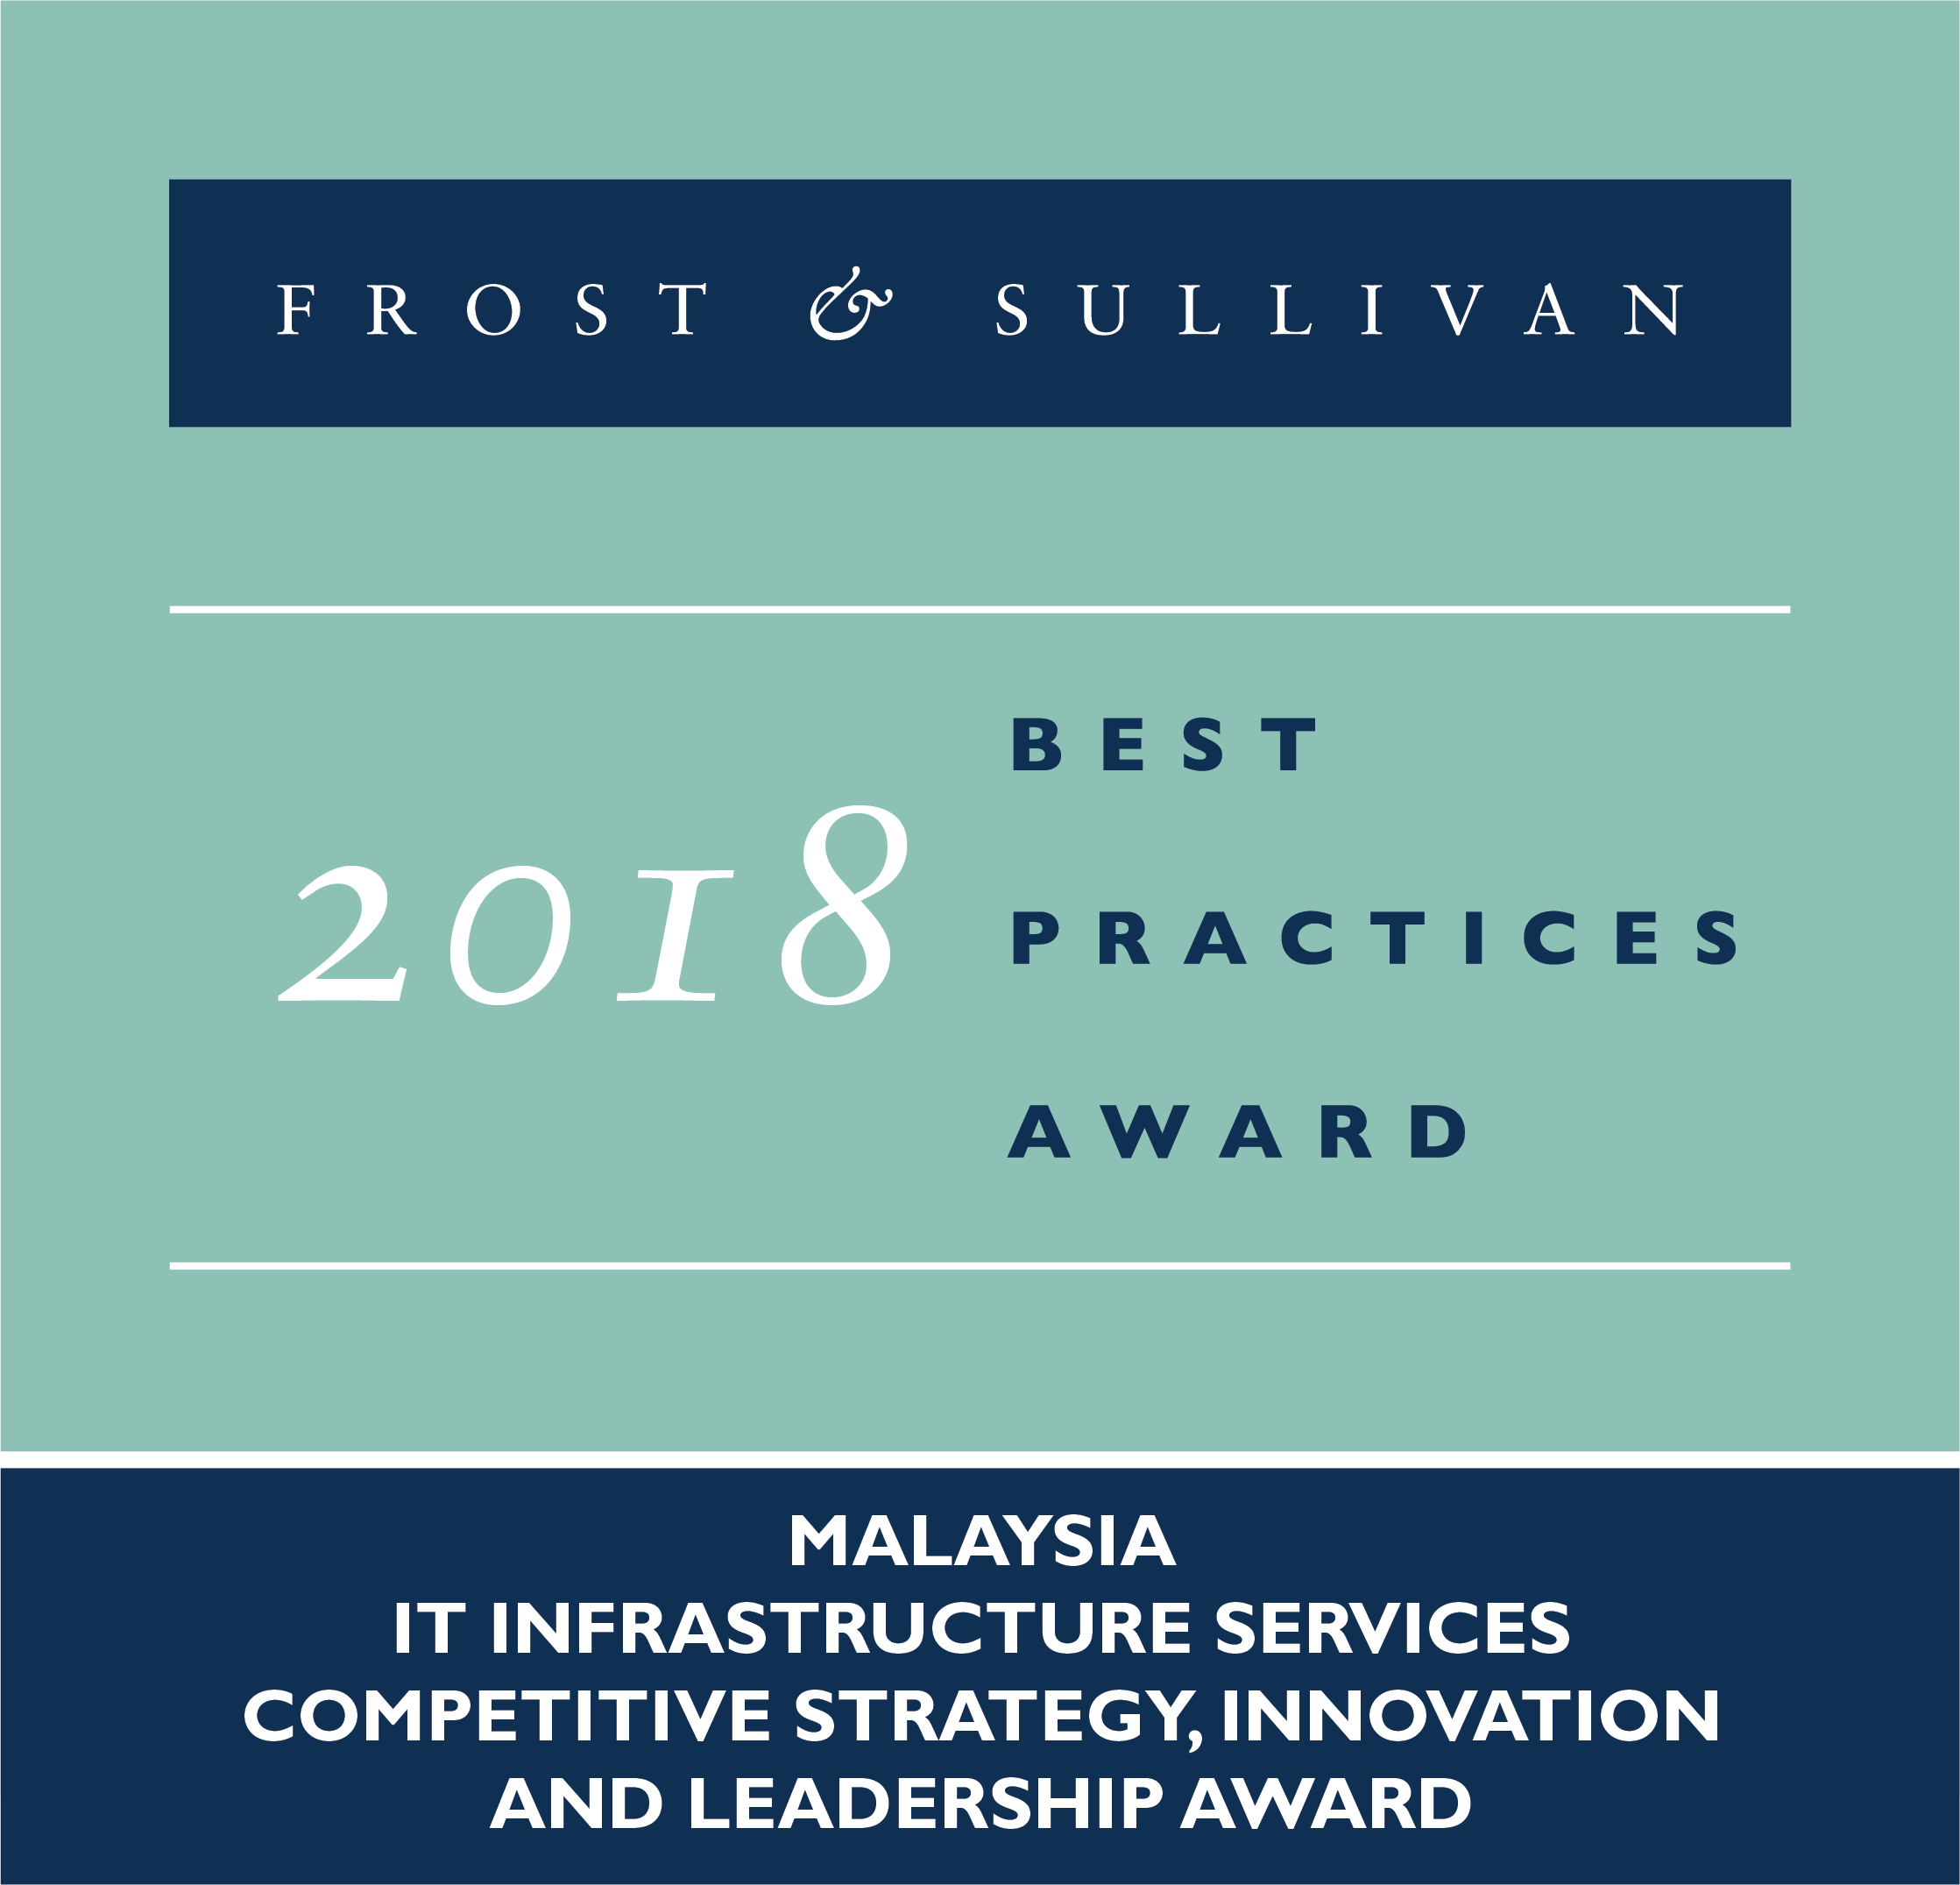 HeiTech Padu Berhad Wins The 2018 Frost & Sullivan Malaysia Excellence Awards For IT Infrastructure Services Competitive Strategy, Innovation & Leadership Award